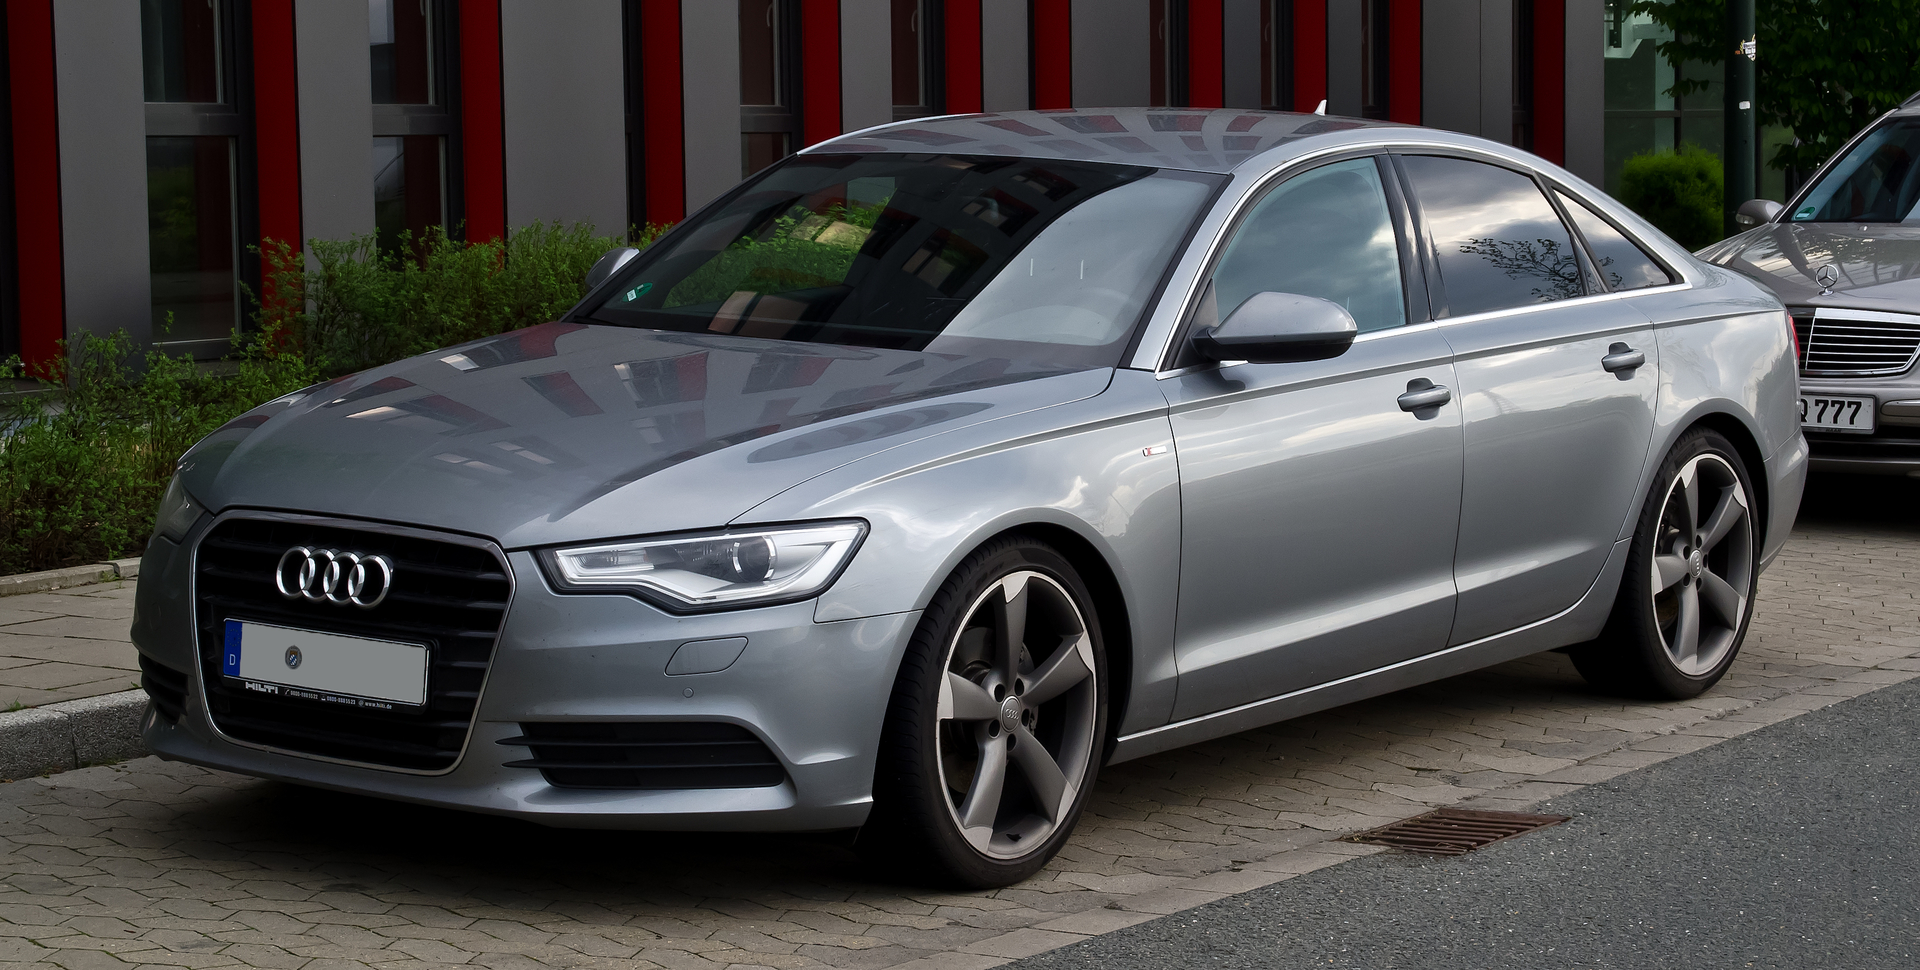 MotorEasy Reviews Looking To Buy A Used Audi Start Here Car - Buy an audi